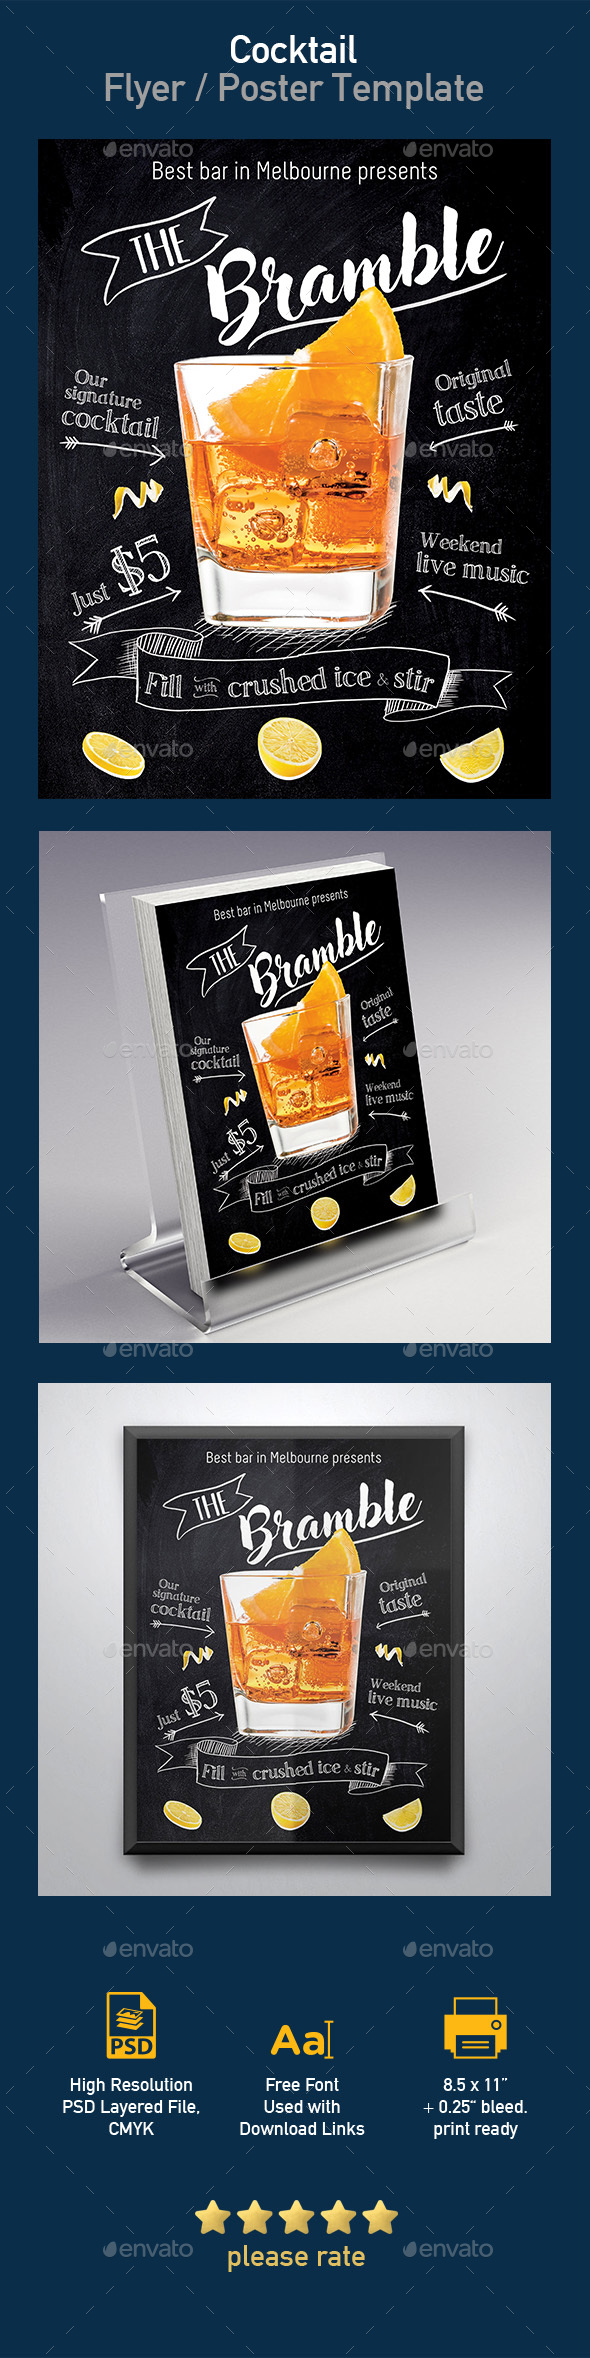 Bramble Cocktail Flyer / Poster Template - Print Templates